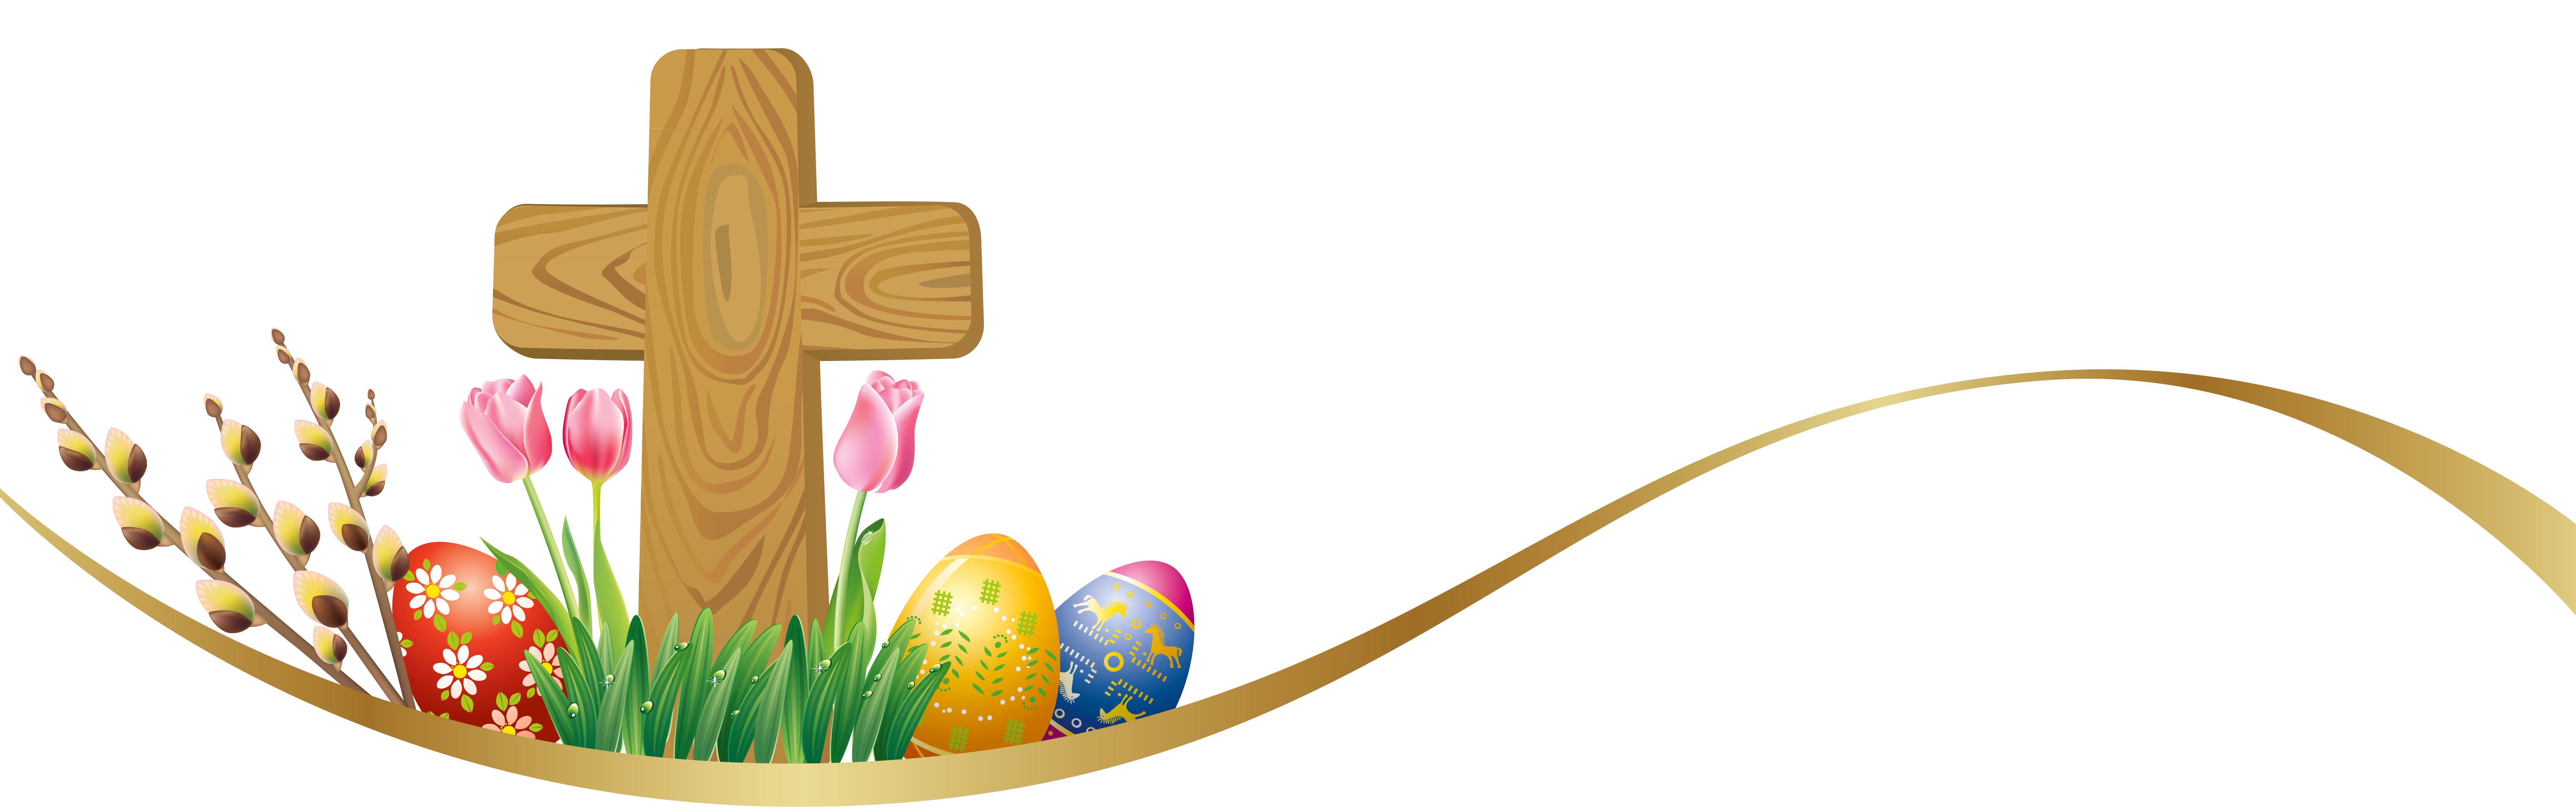 7226x2279 Easter Clipart Cross